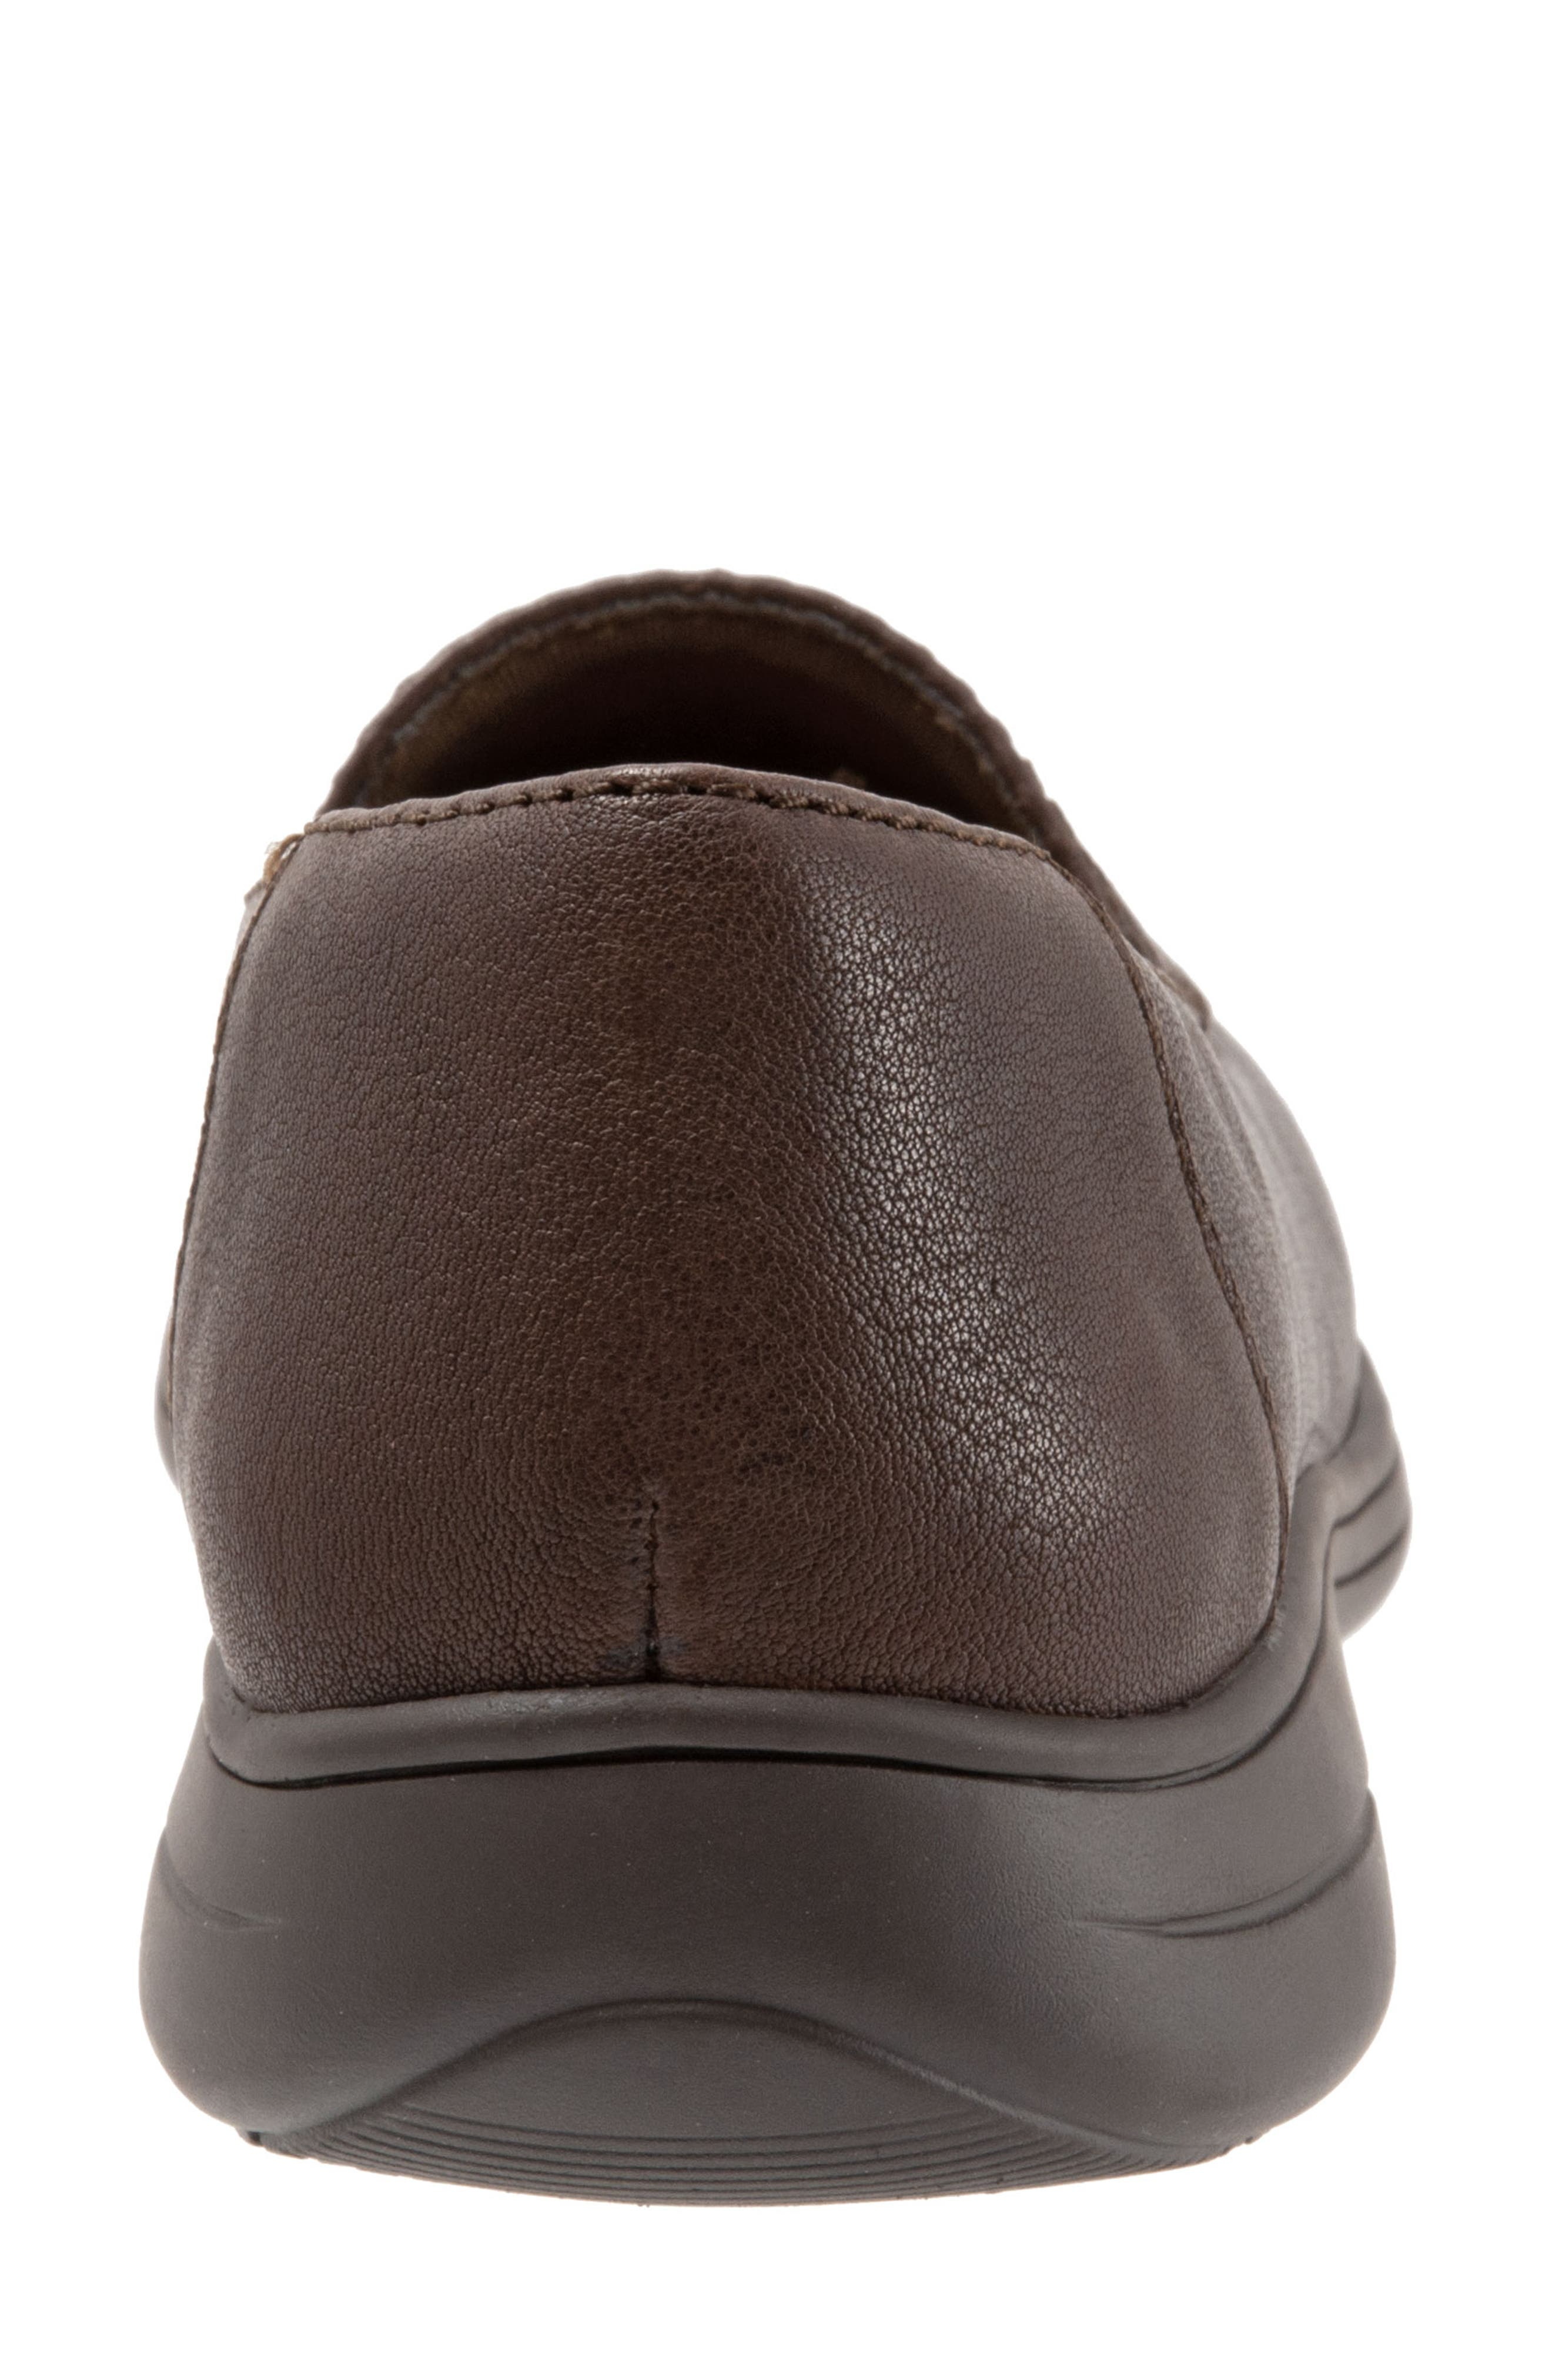 Jacob Loafer,                             Alternate thumbnail 7, color,                             DARK BROWN LEATHER